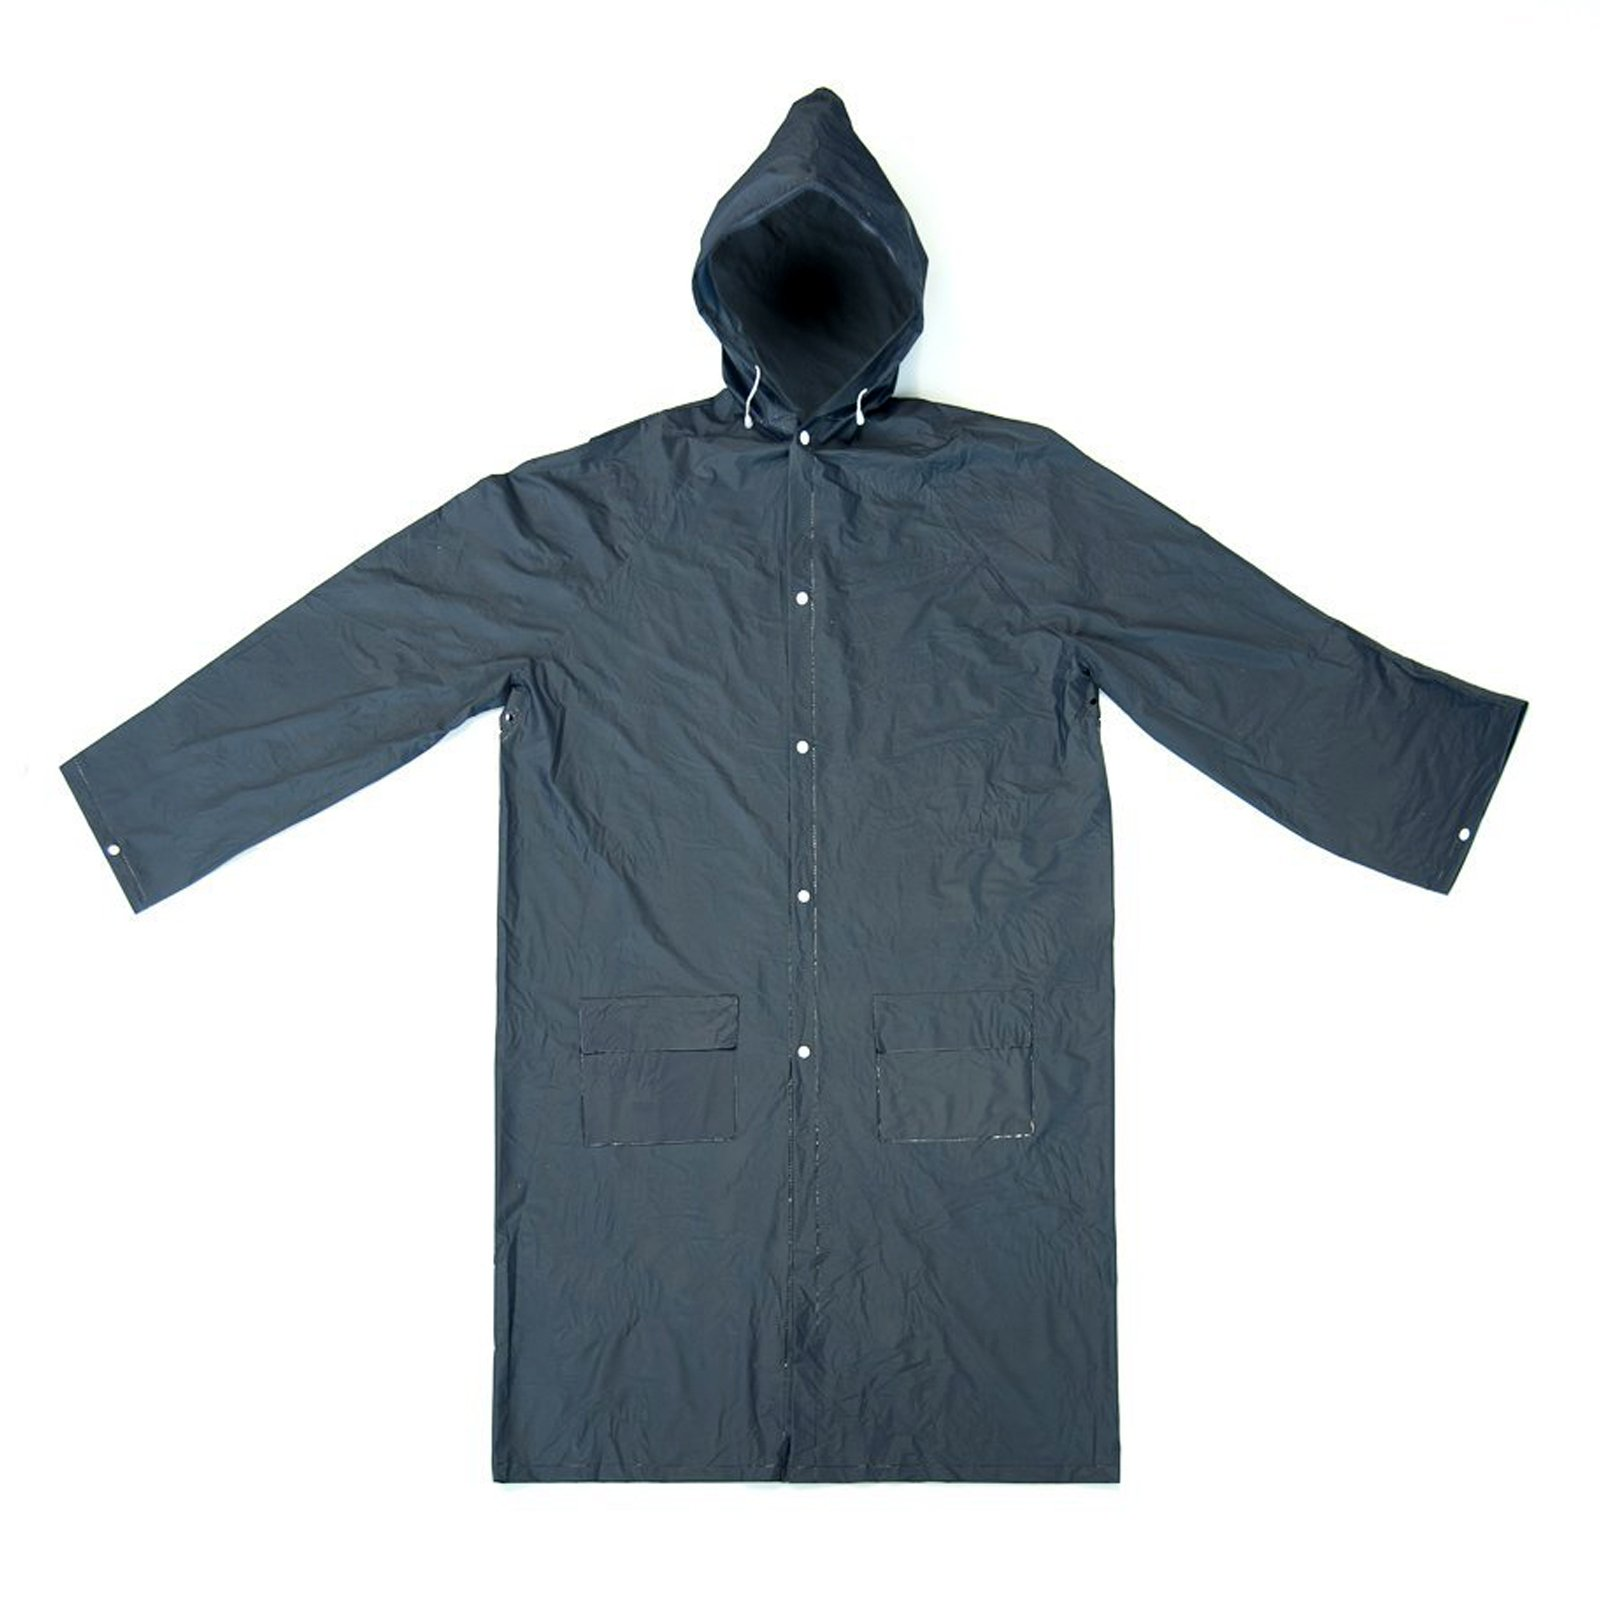 SE OD-RC784-XL Raincoat, Size M-XL, Navy Blue